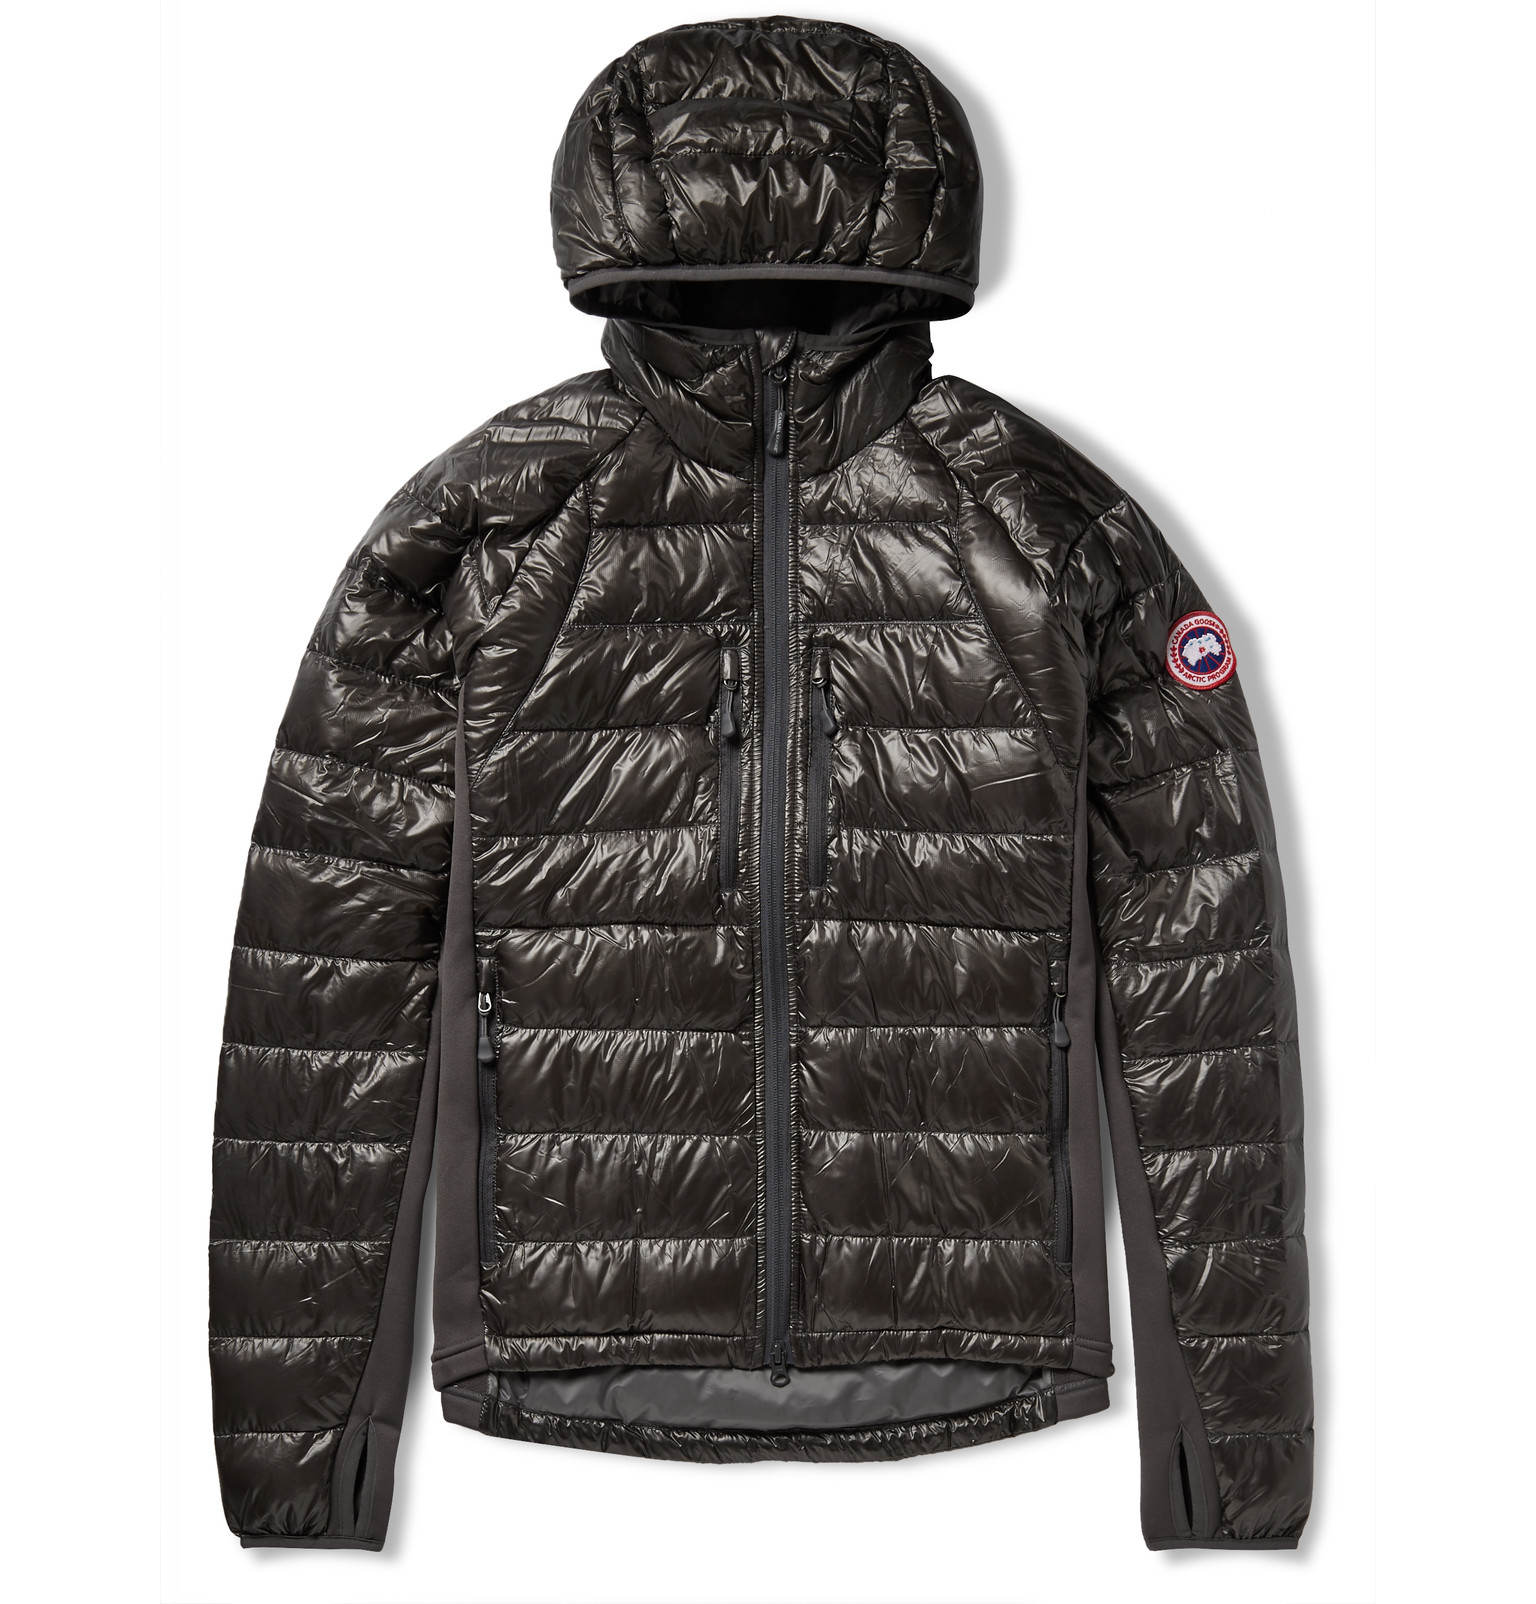 Canada Goose Hybridge Lite Jacket Timber Shell - photo#33